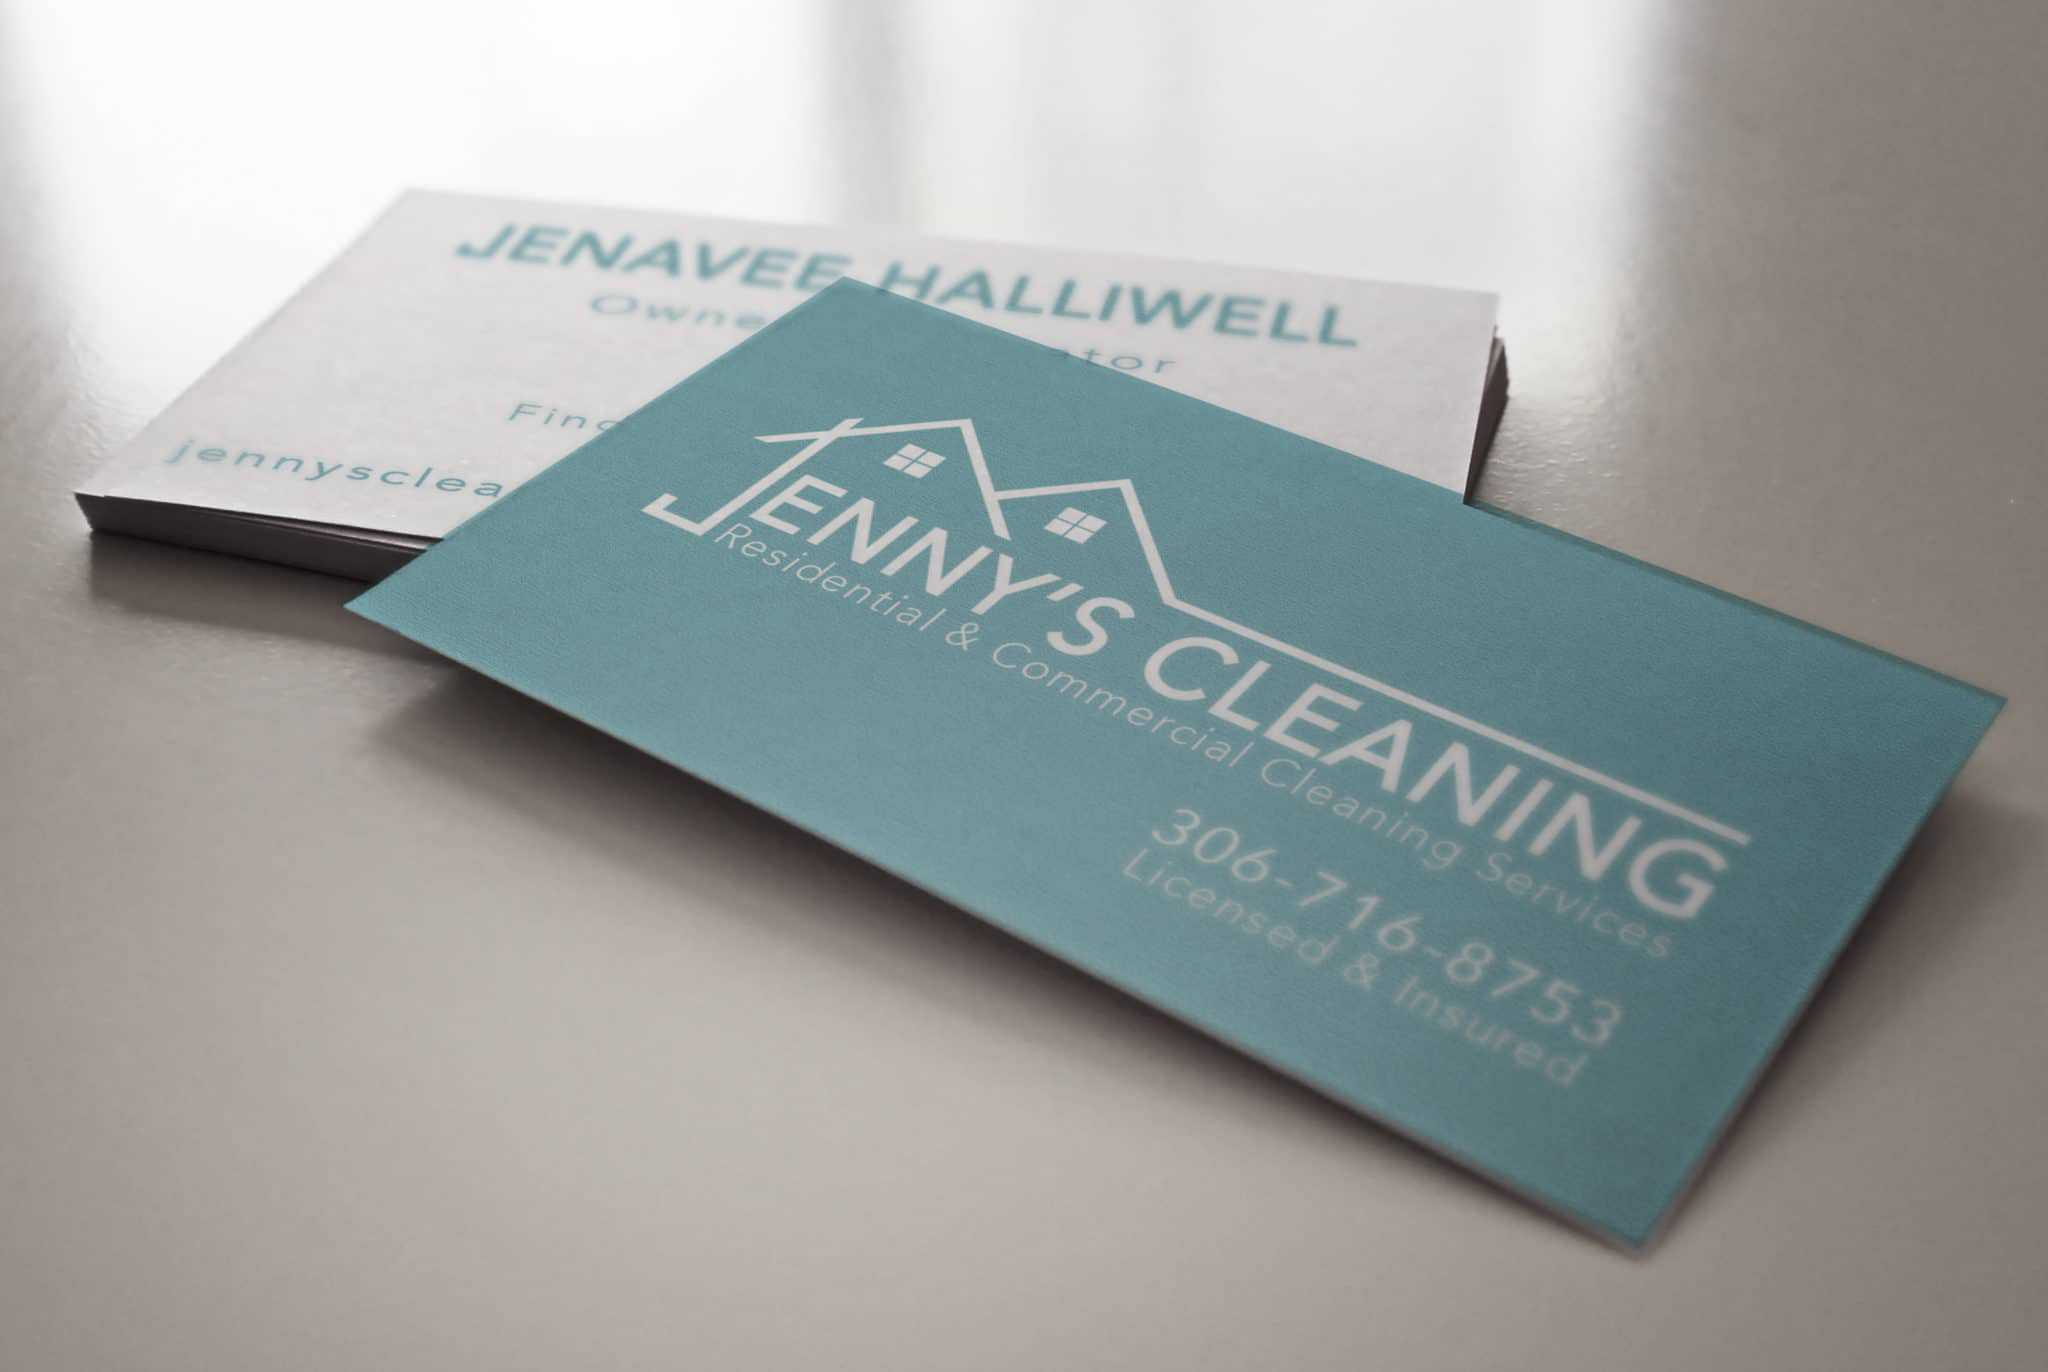 Jenny's Cleaning Residential & Commercial Cleaning Services Business Card Design